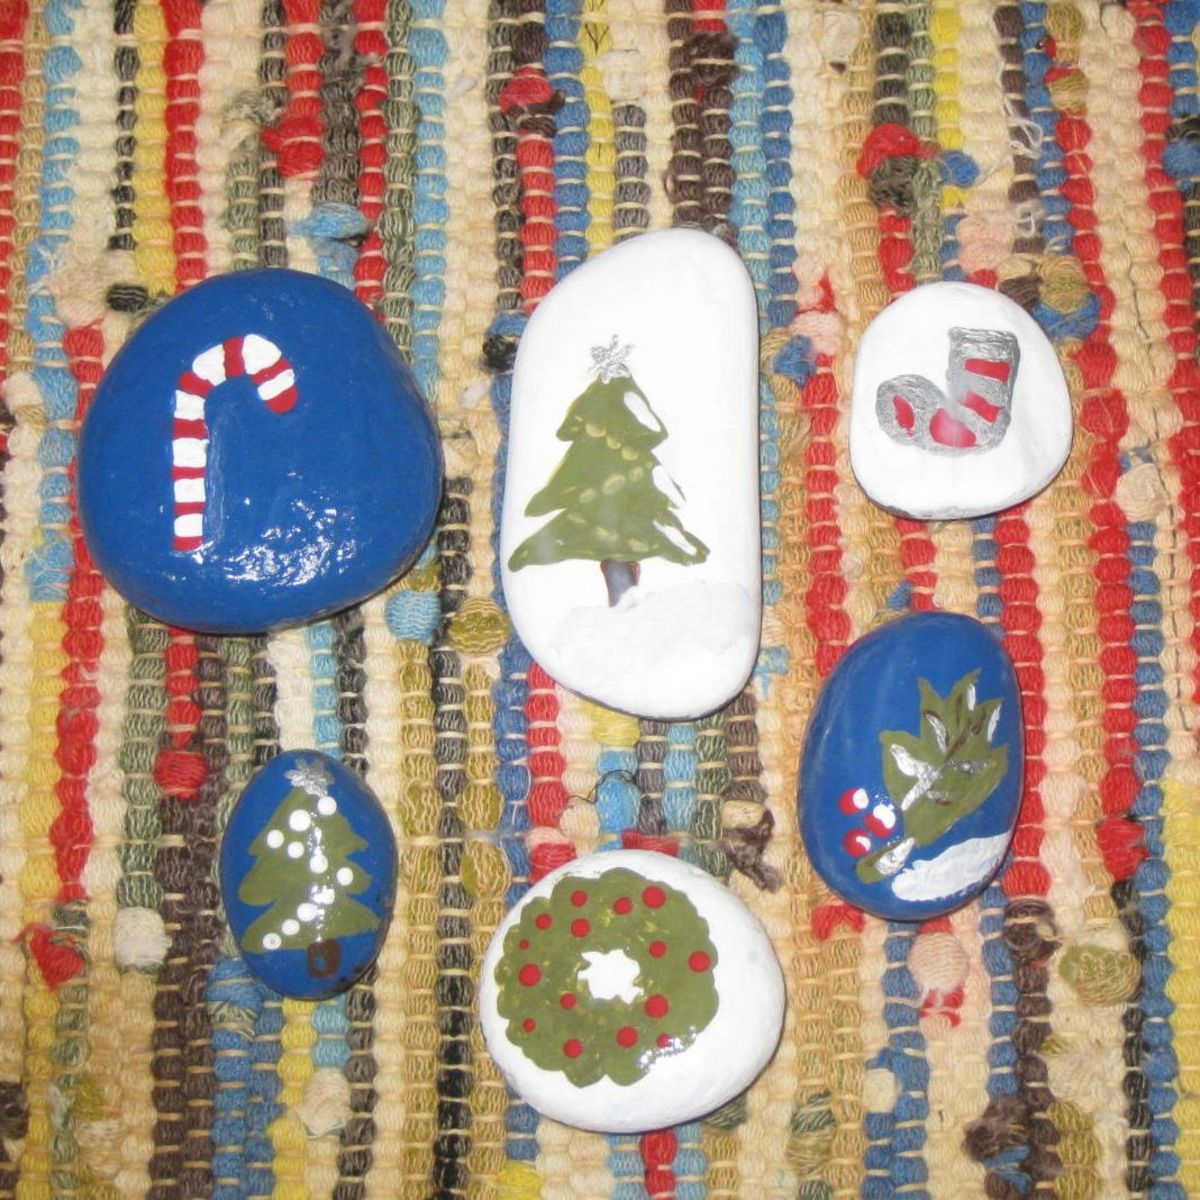 Make rocks to give or keep to celebrate winter and Christmas.